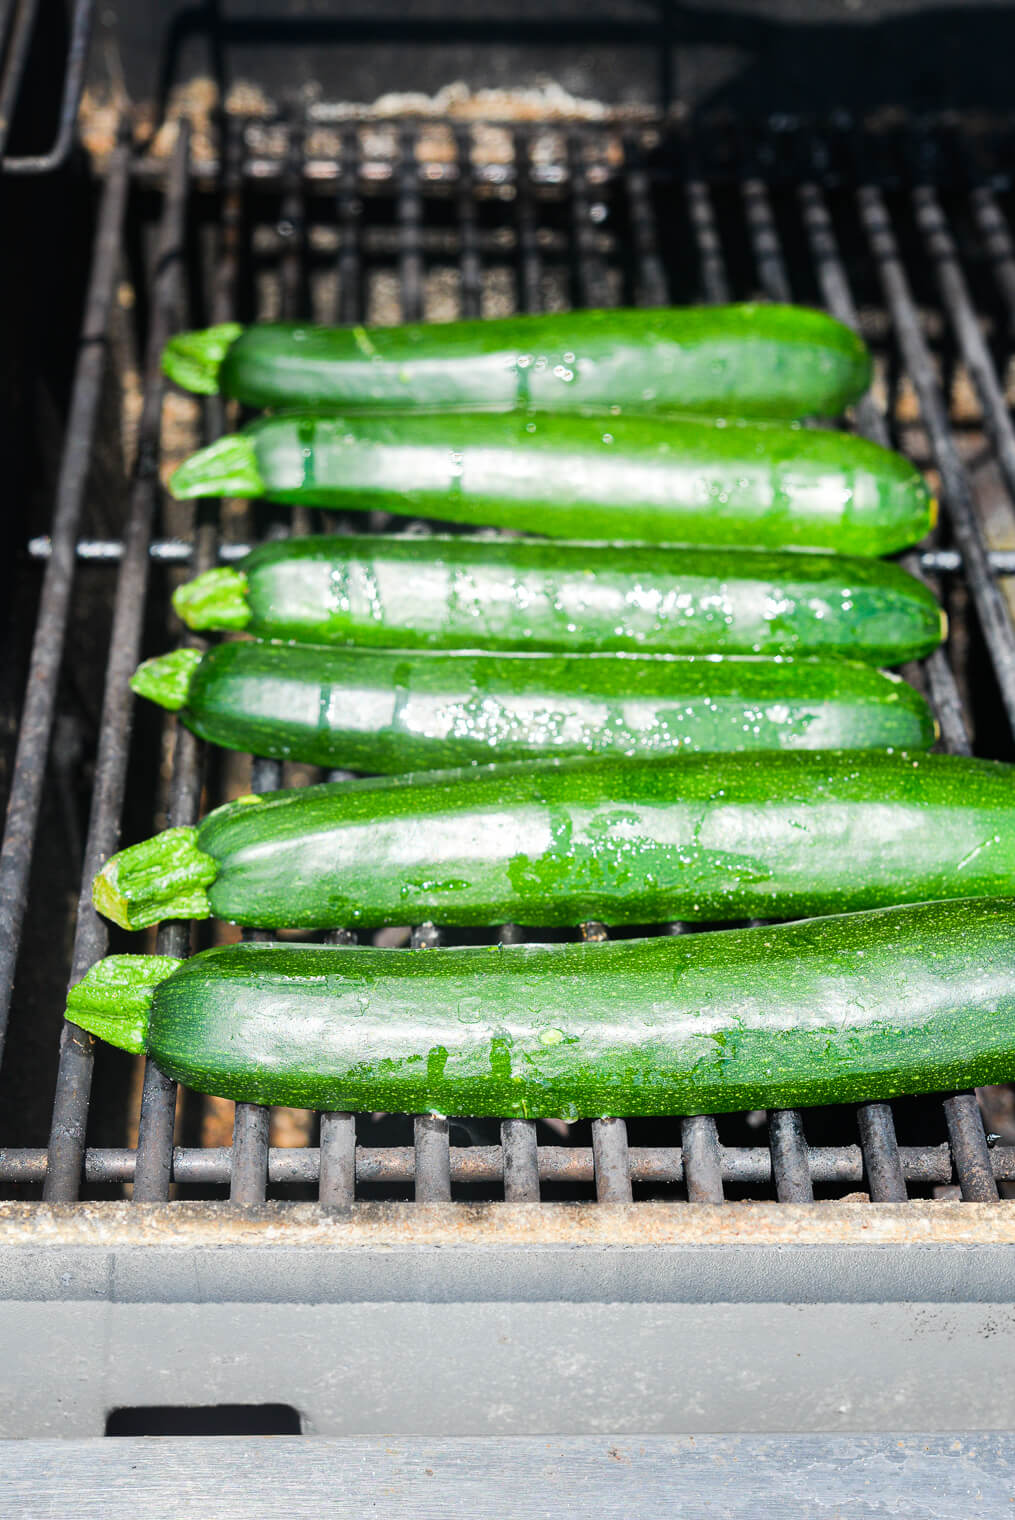 6 halves of zucchini, cut side down, laying on the grates of a gas grill